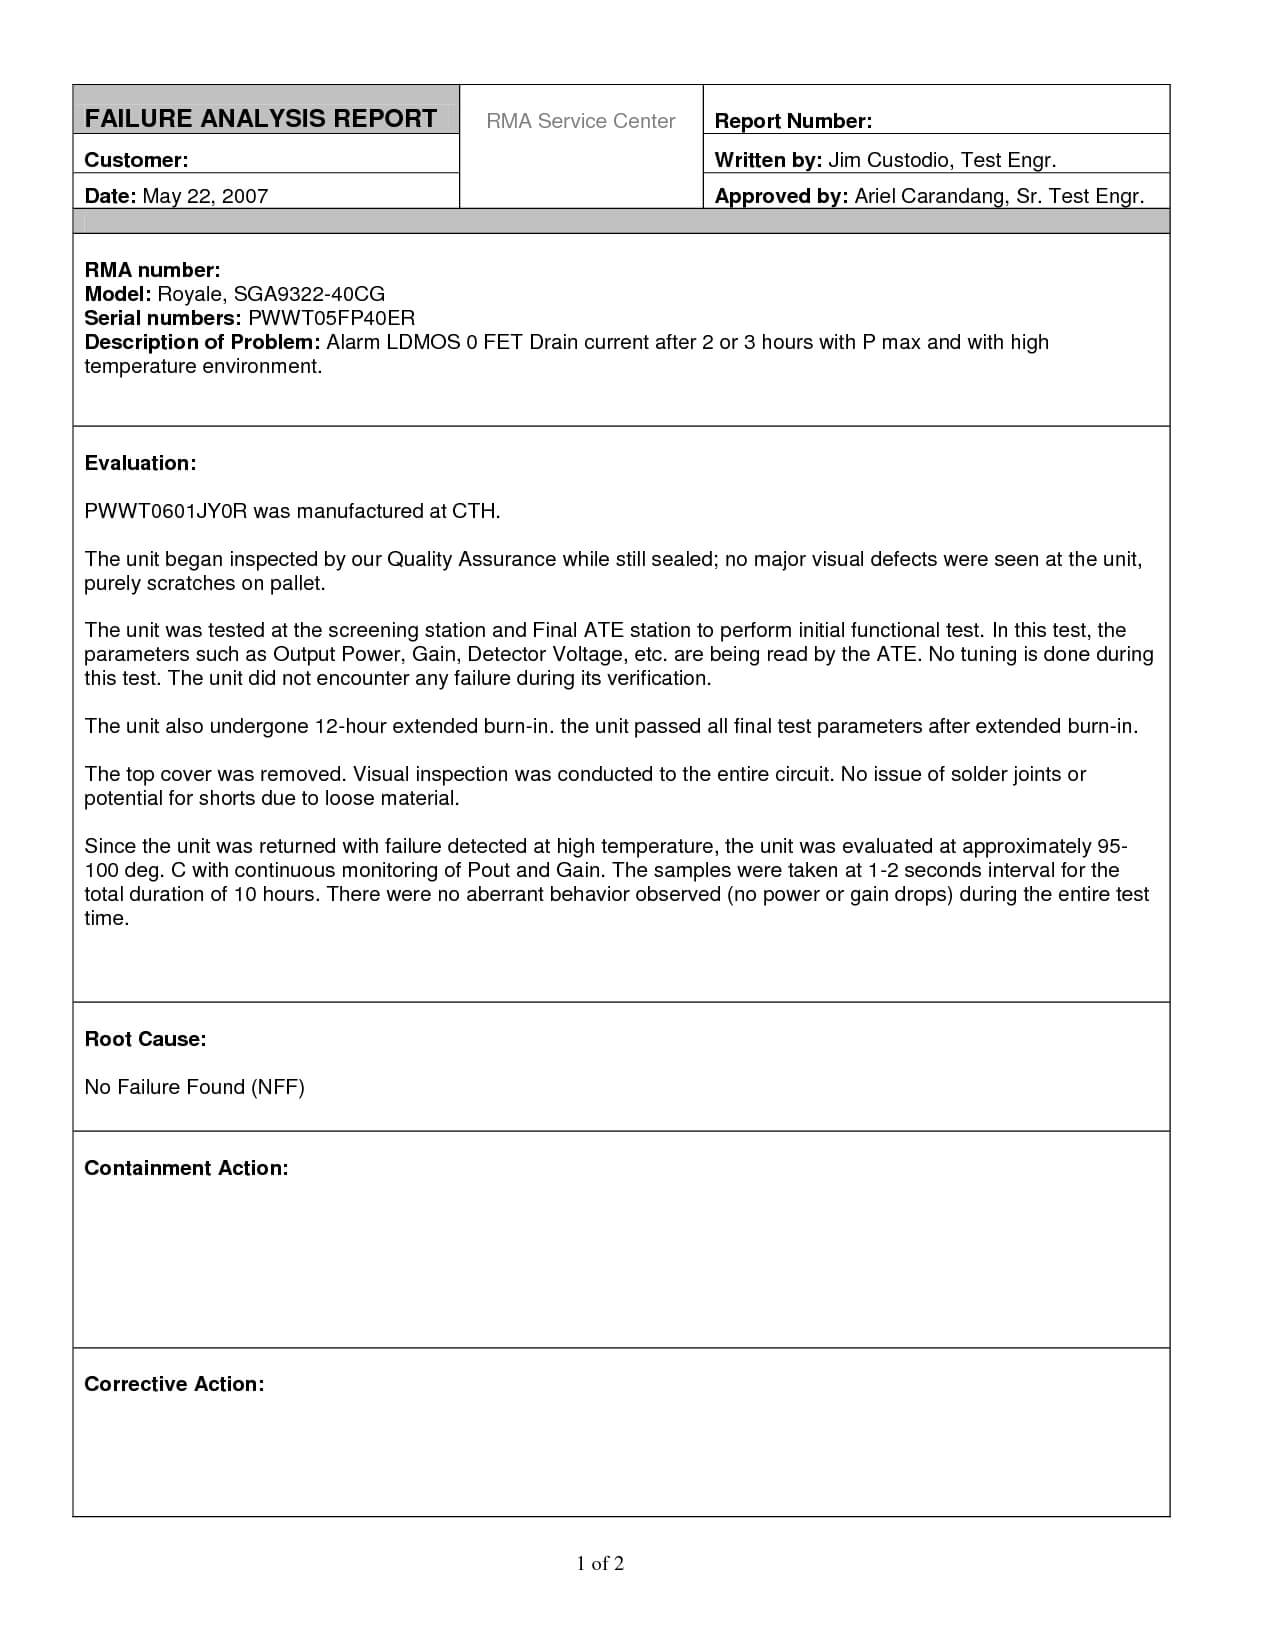 Excellent Failure Analysis Report Writtenjimcustodio34 For Failure Analysis Report Template